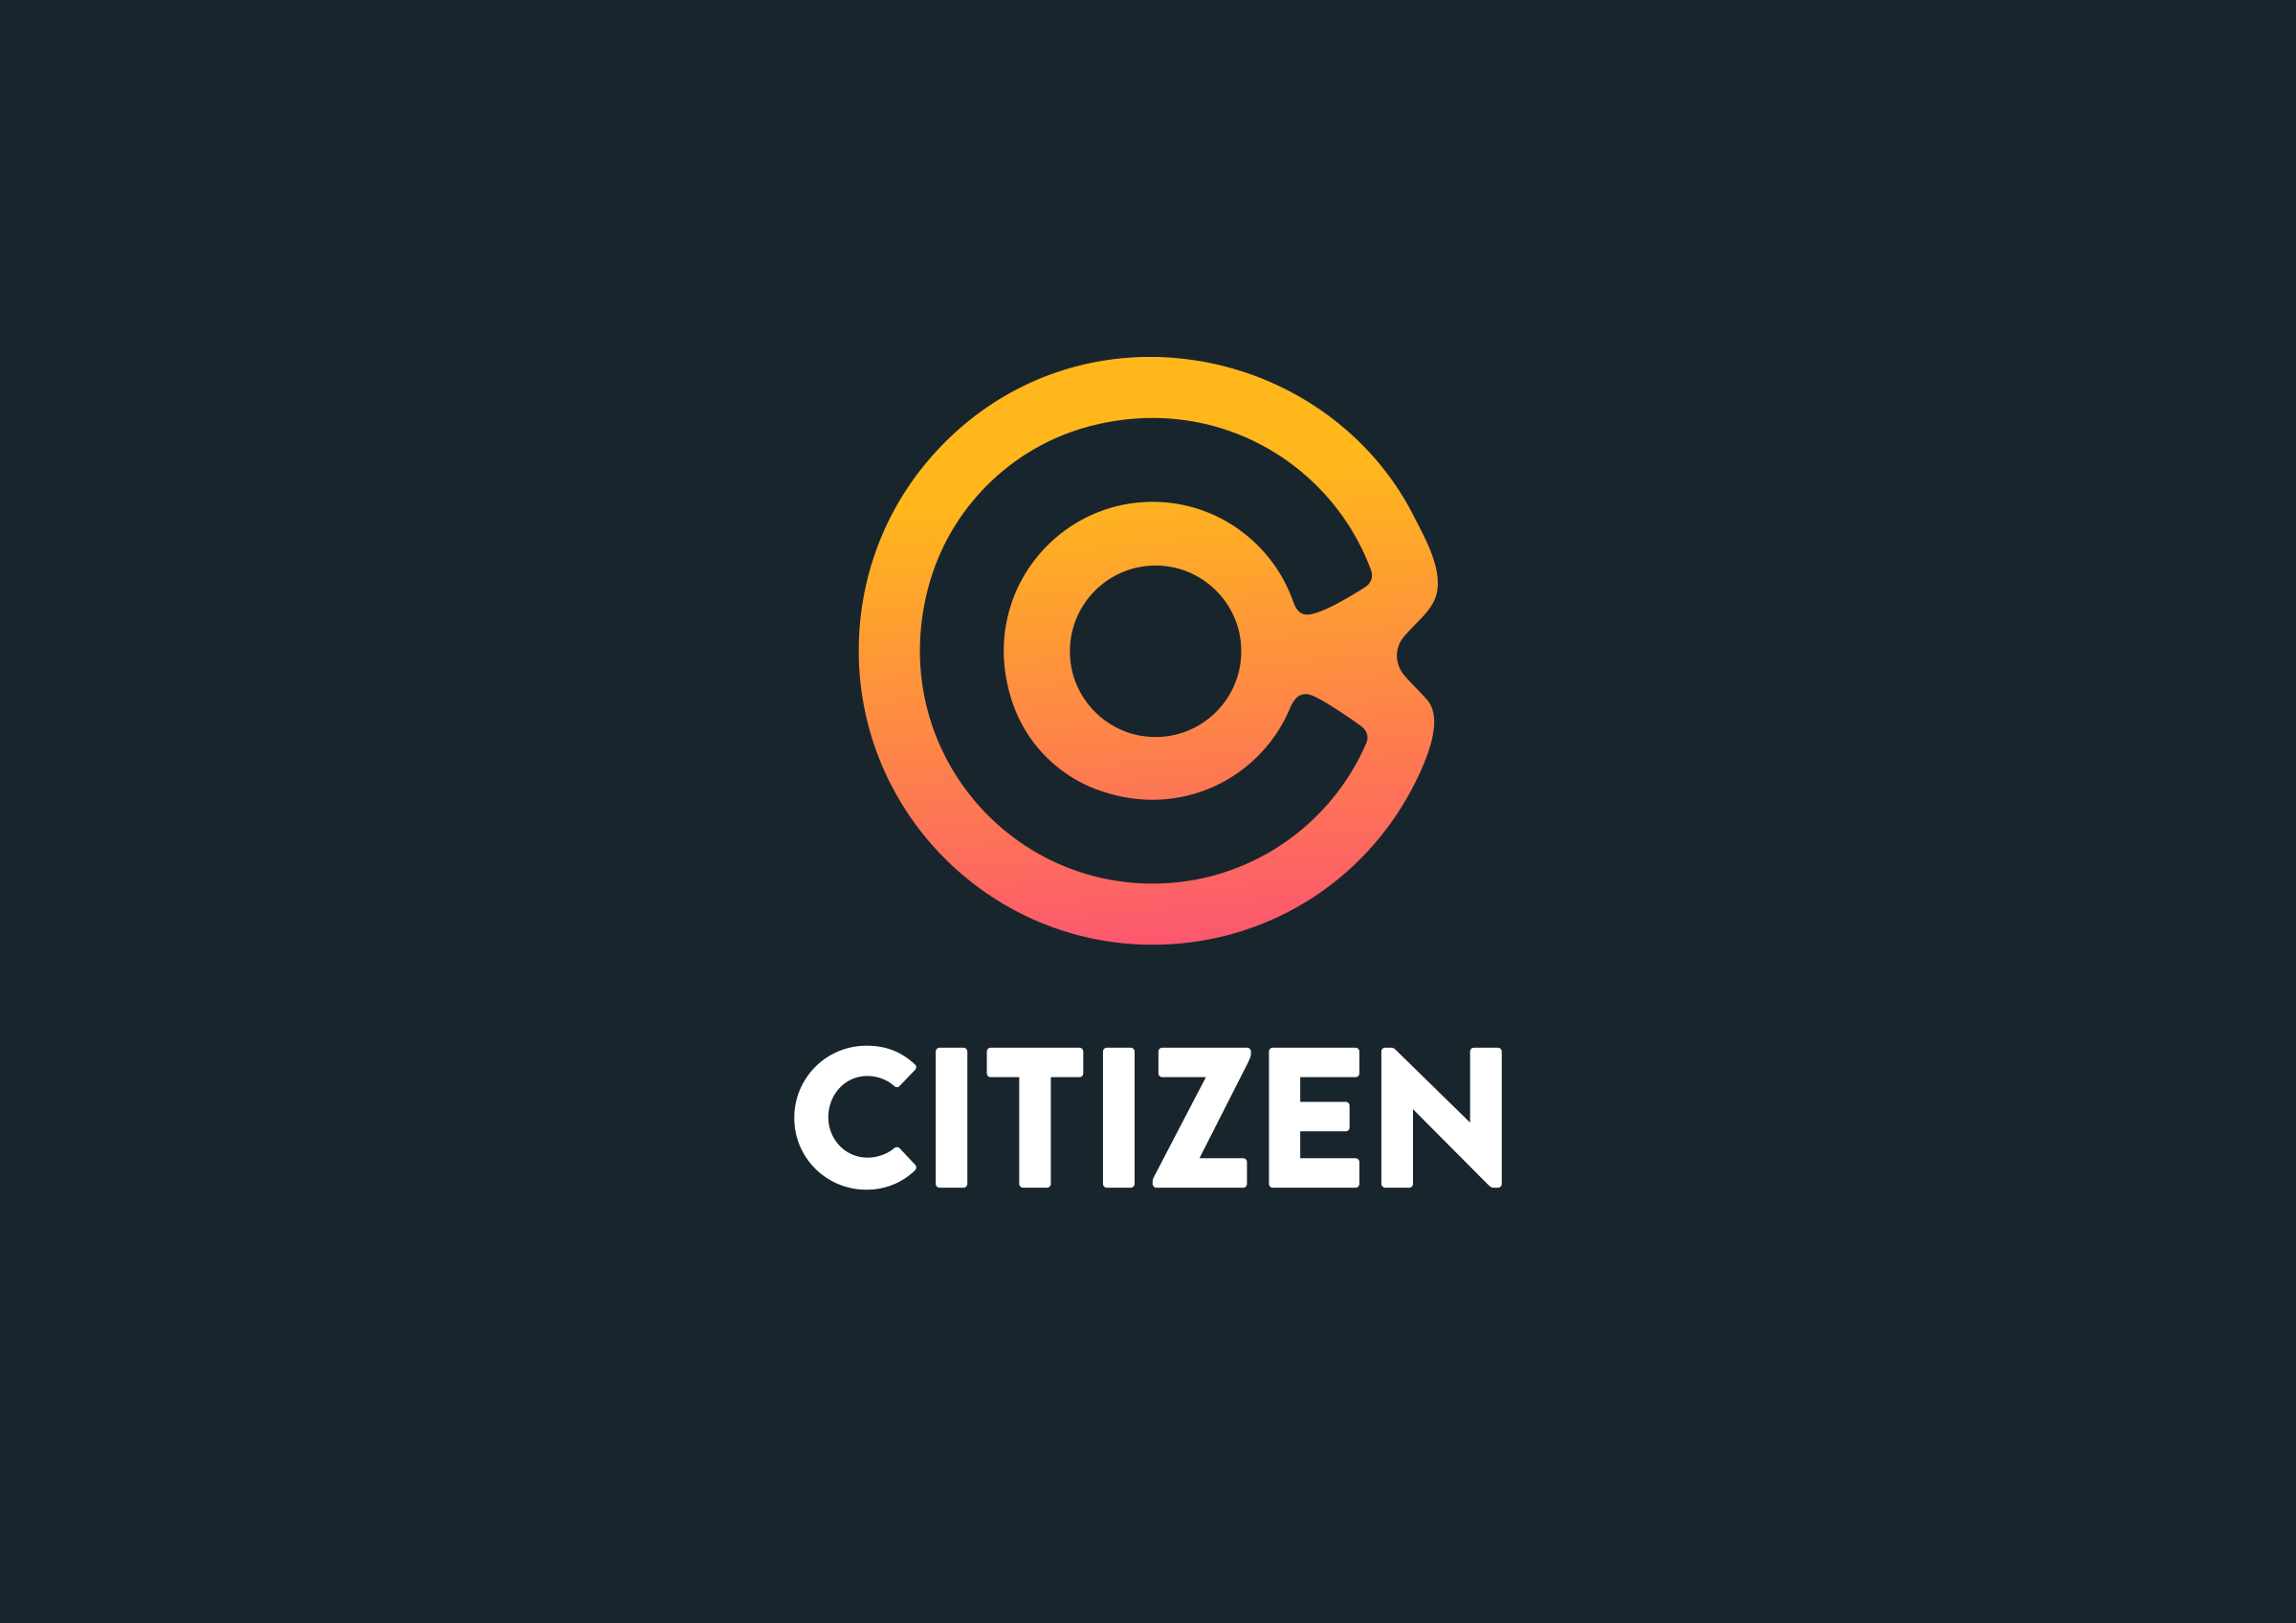 Full rebrand and communications – for social housing company  WM Housing  (now known as  Citizen )